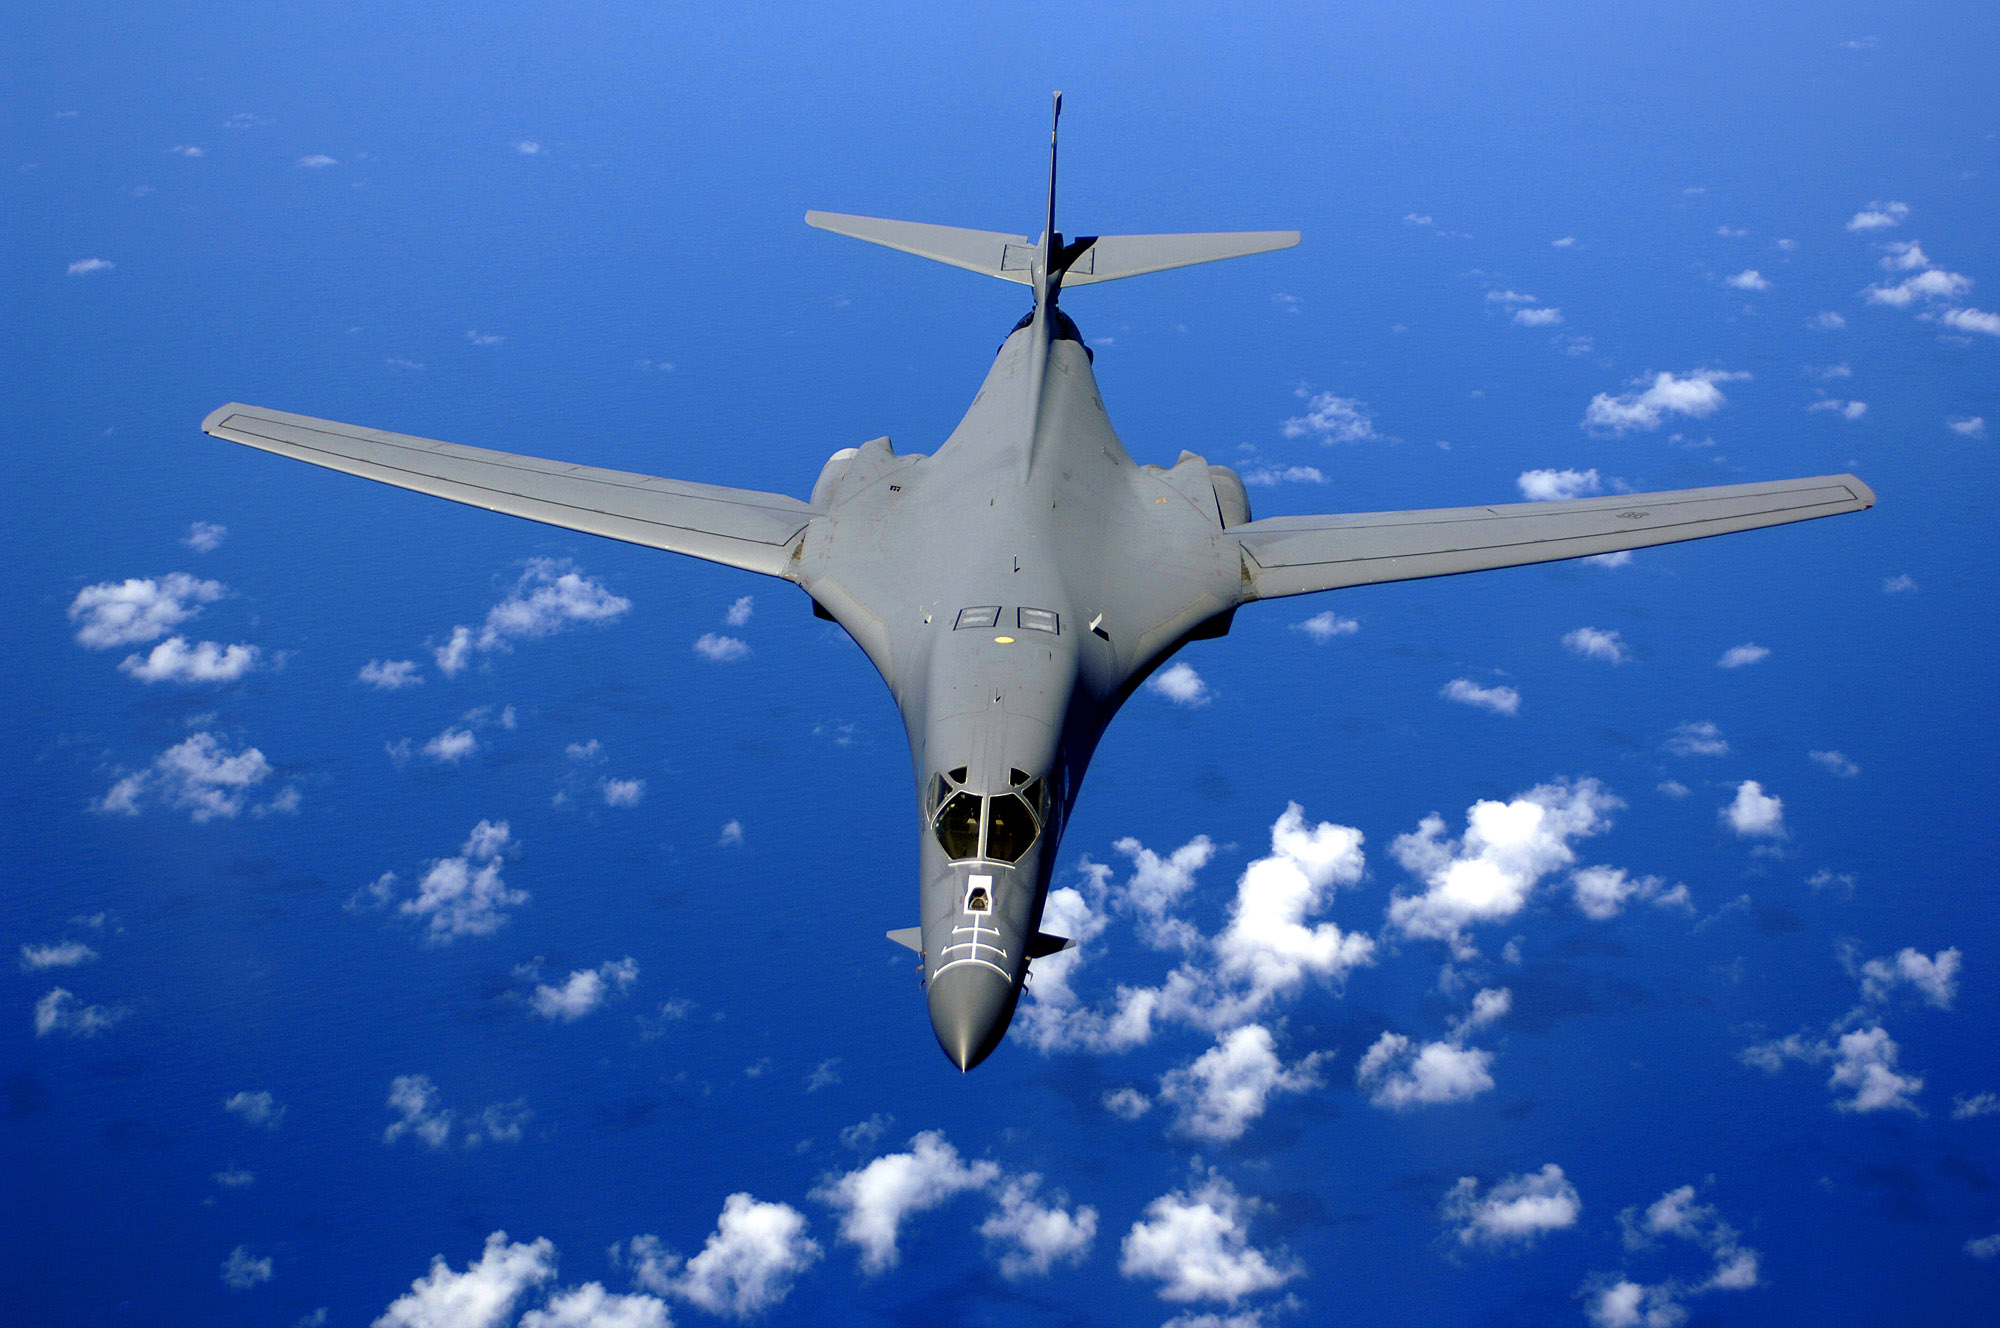 http://upload.wikimedia.org/wikipedia/commons/4/4a/B-1B_over_the_pacific_ocean.jpg